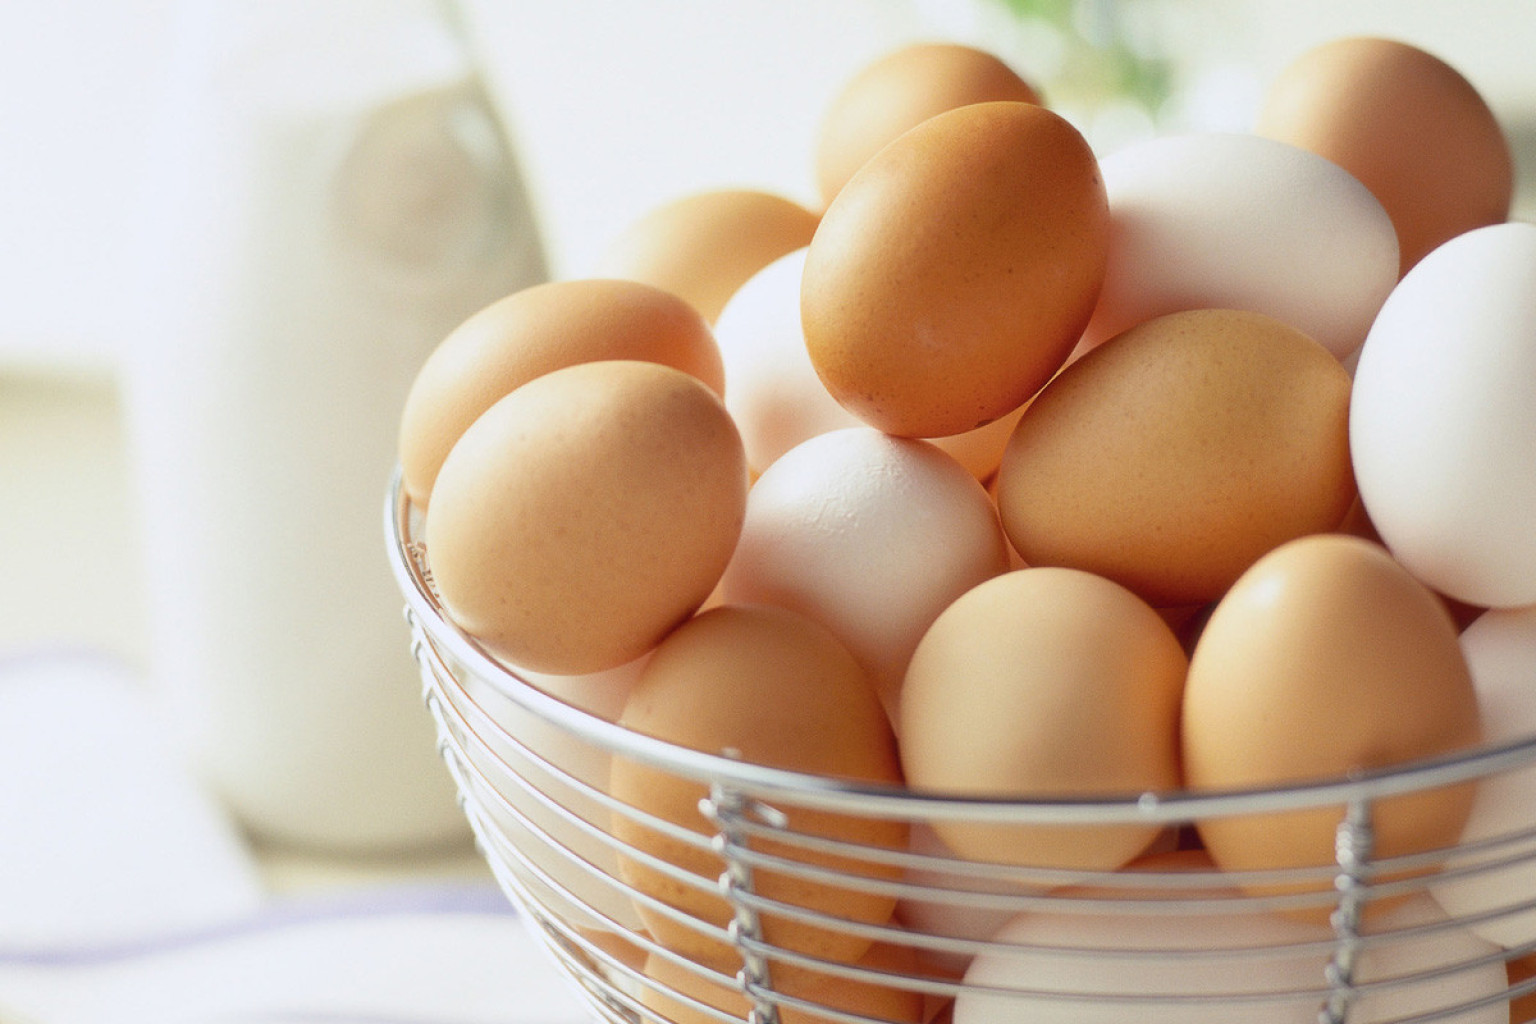 Brown and white eggs for health benefits